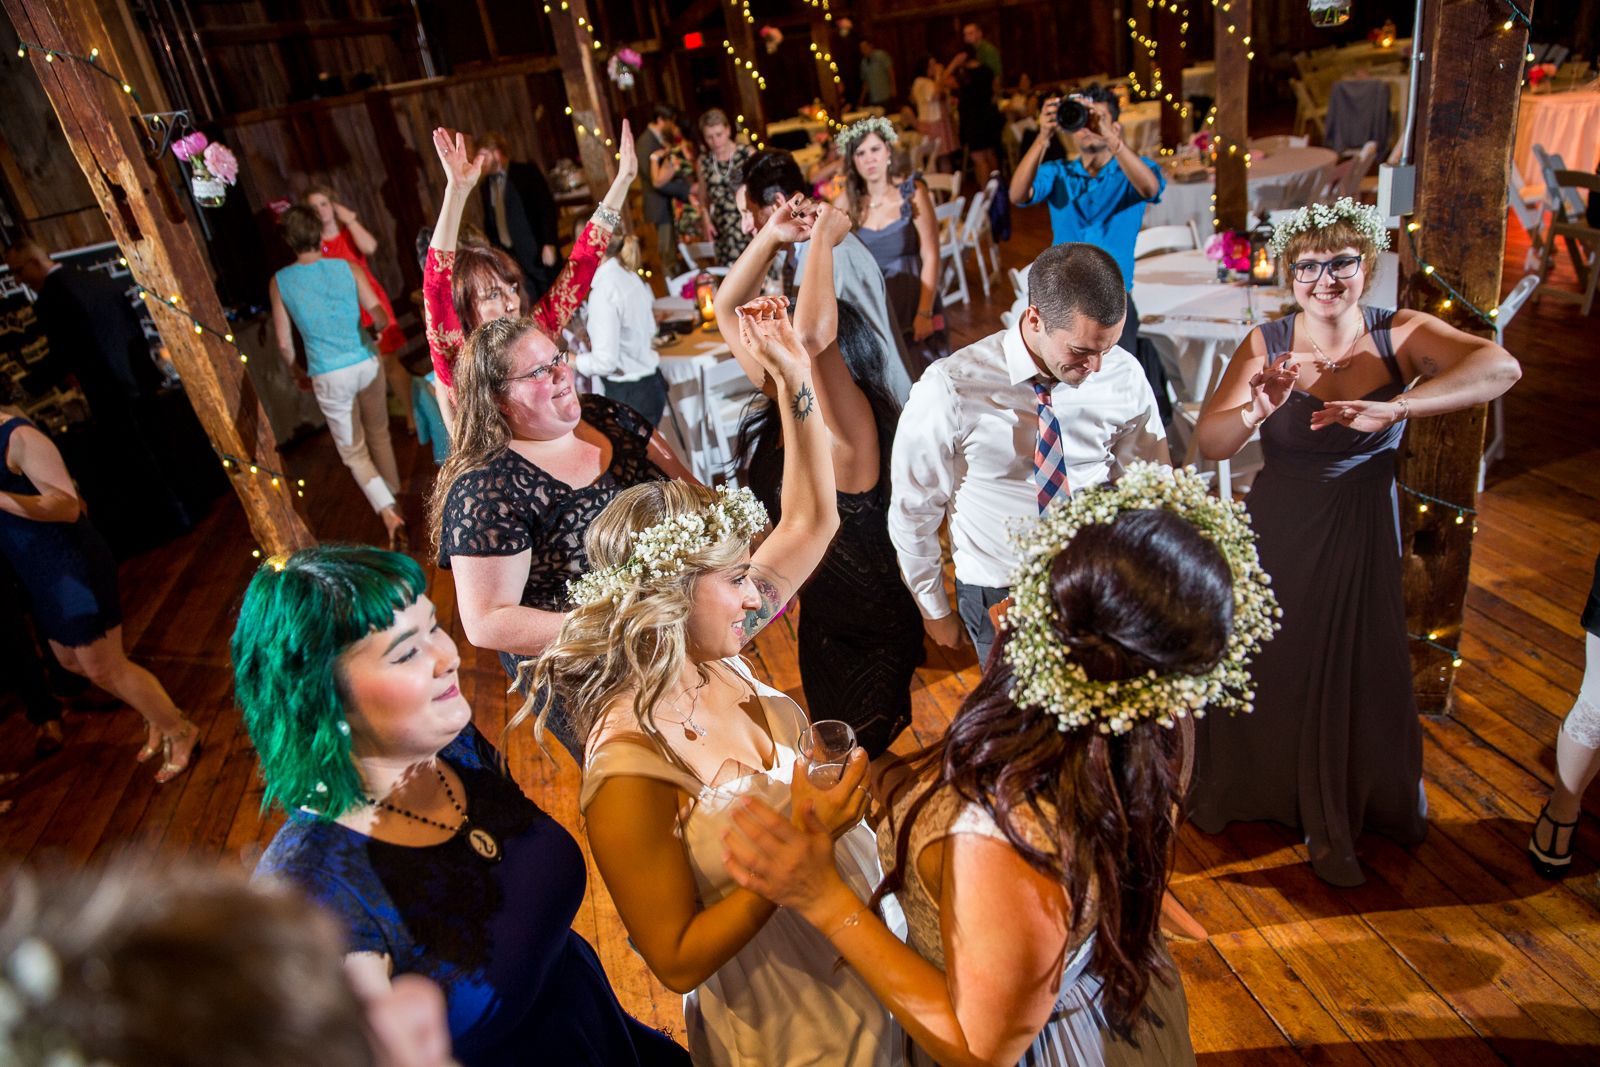 Four_Wings_Photography_Wedding_Red_Barn_at_Hampshire_College-61.jpg